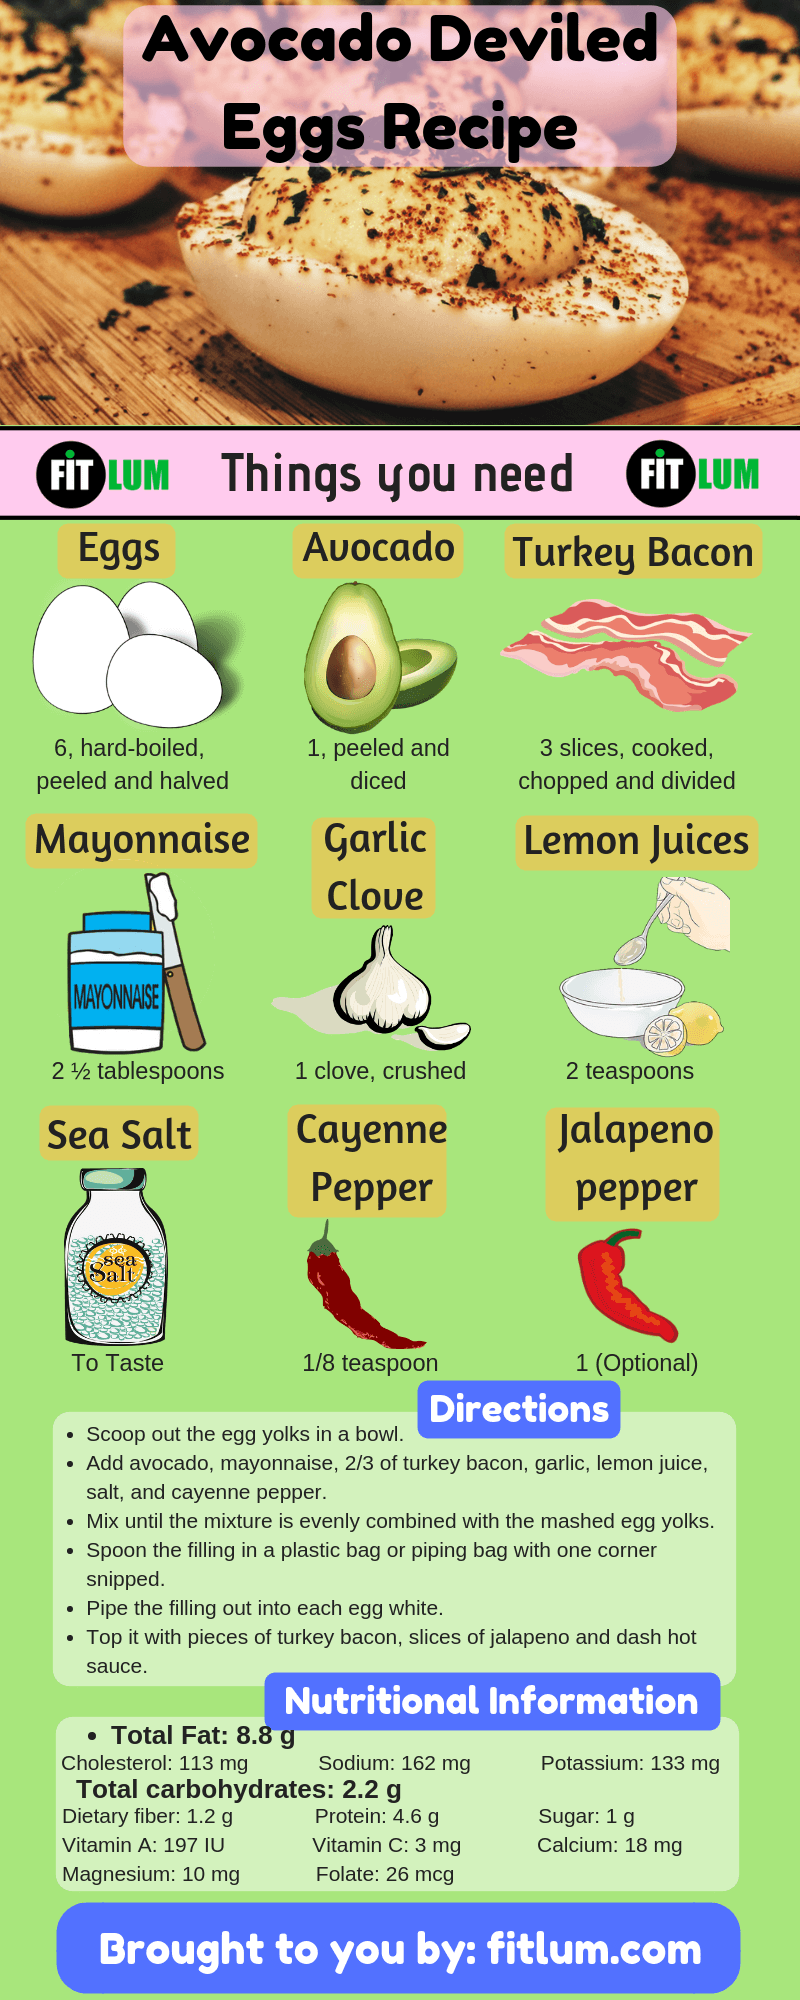 Avocado Deviled Eggs Recipe Infographic